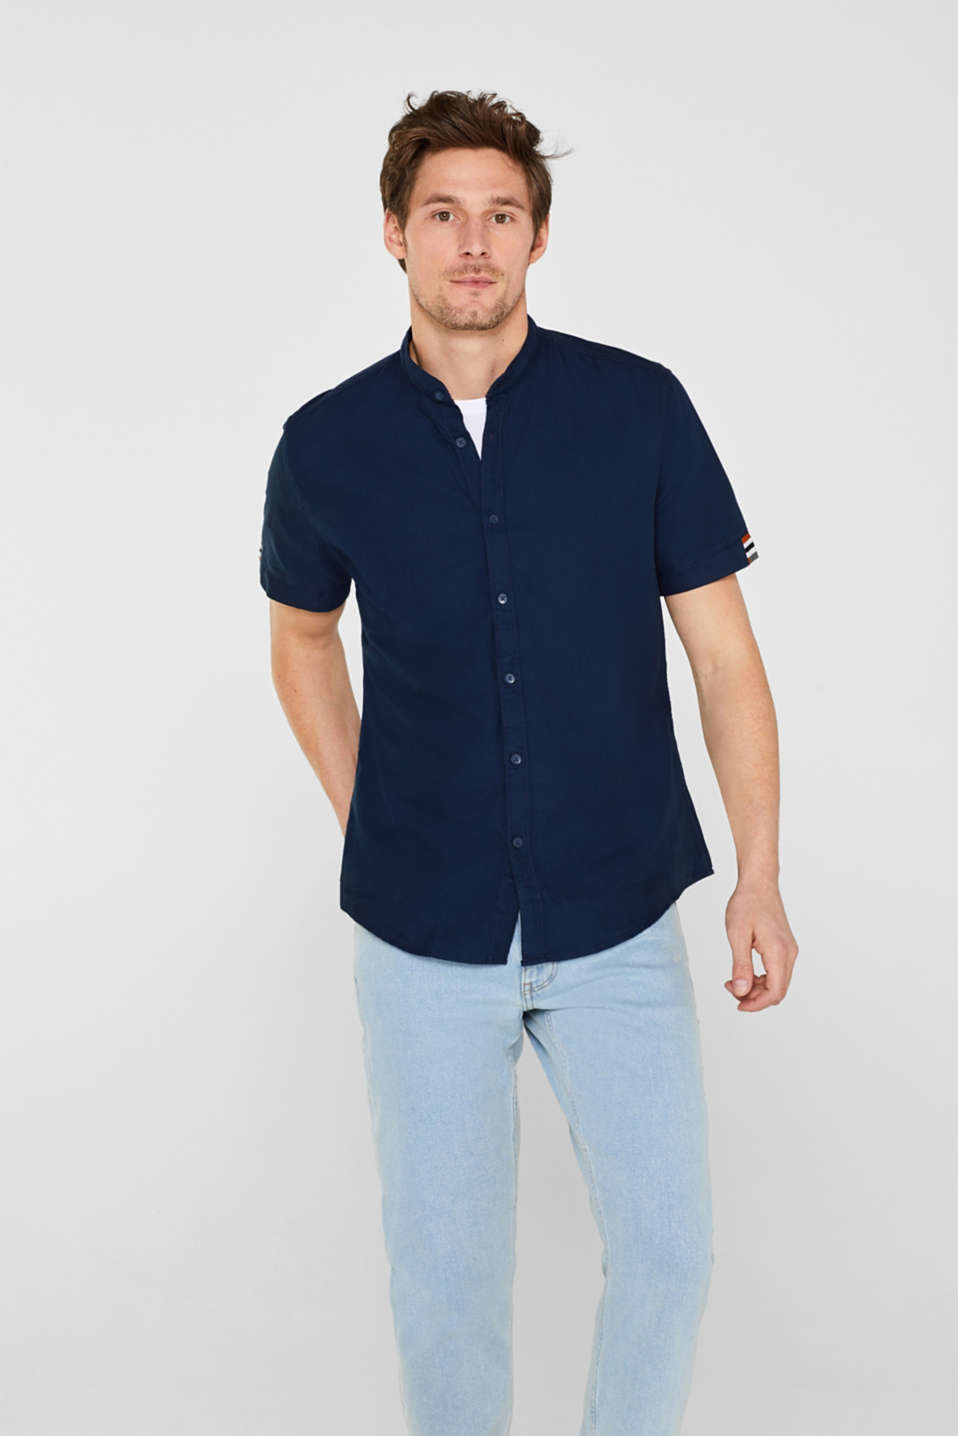 edc - Short sleeve shirt with racing stripes, 100% cotton